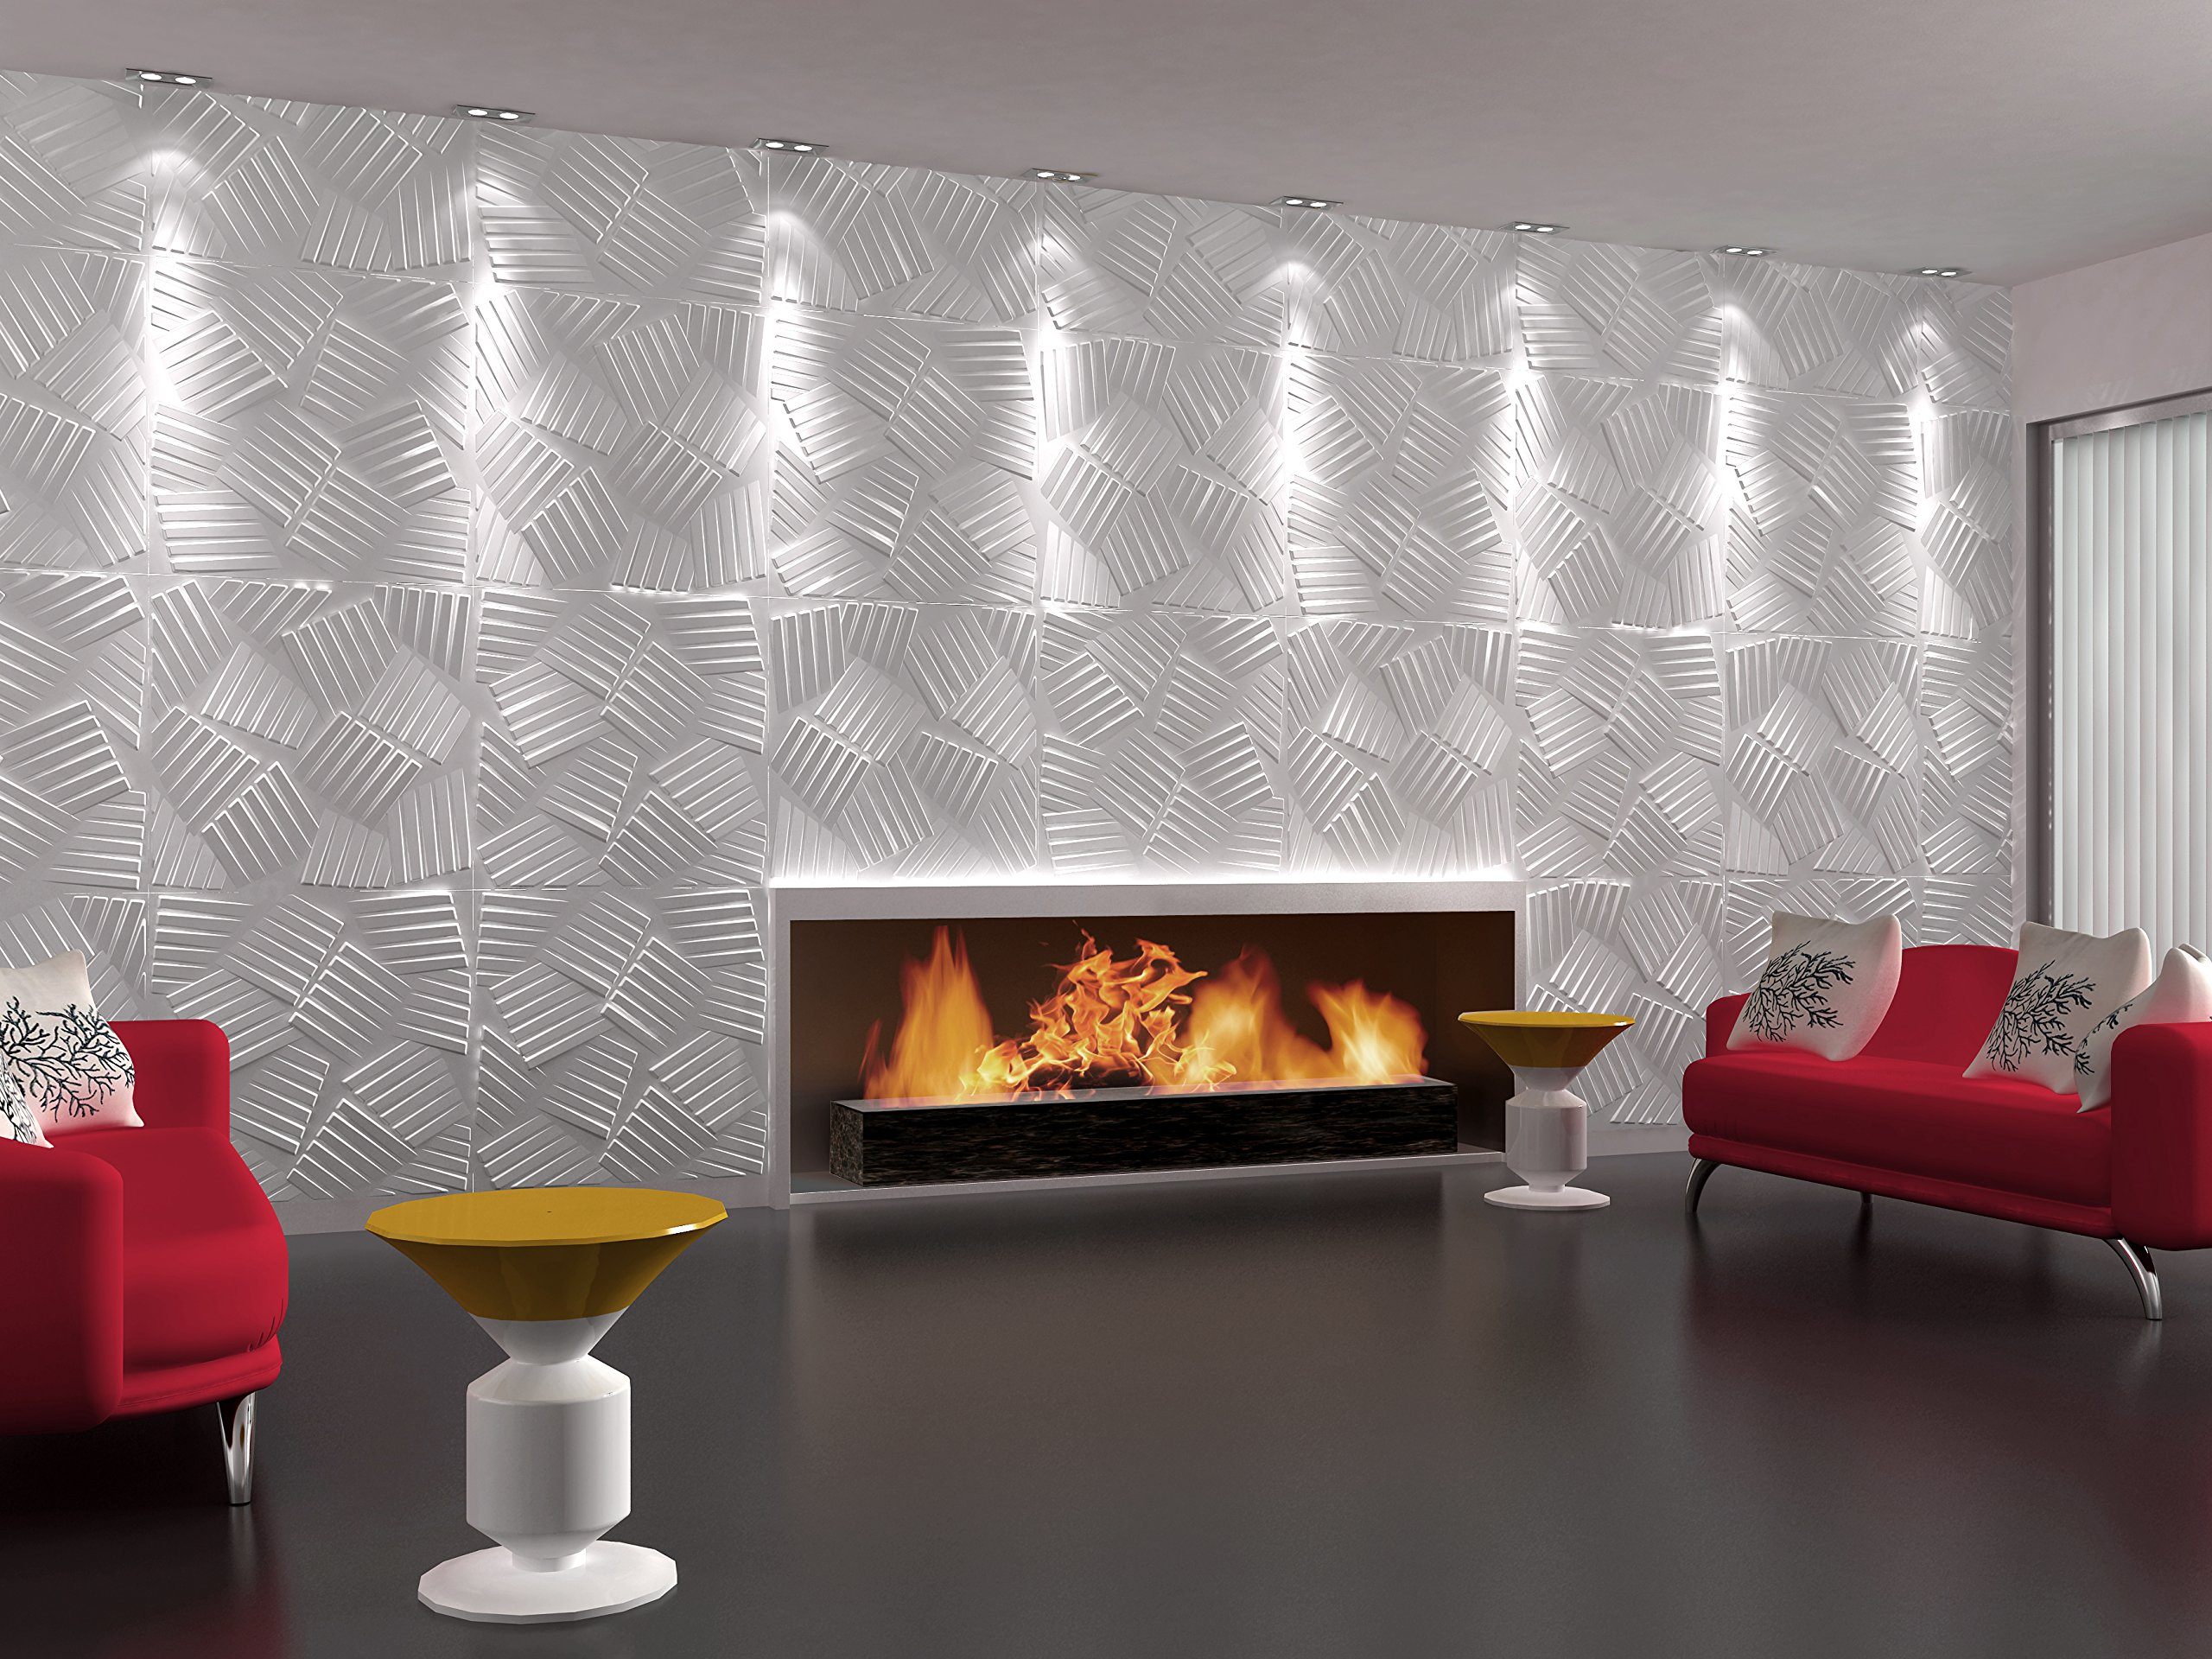 1M Jasper 3D Dimensional Unique Wall Panels Made With Light & Eco-Friendly Bamboo Material